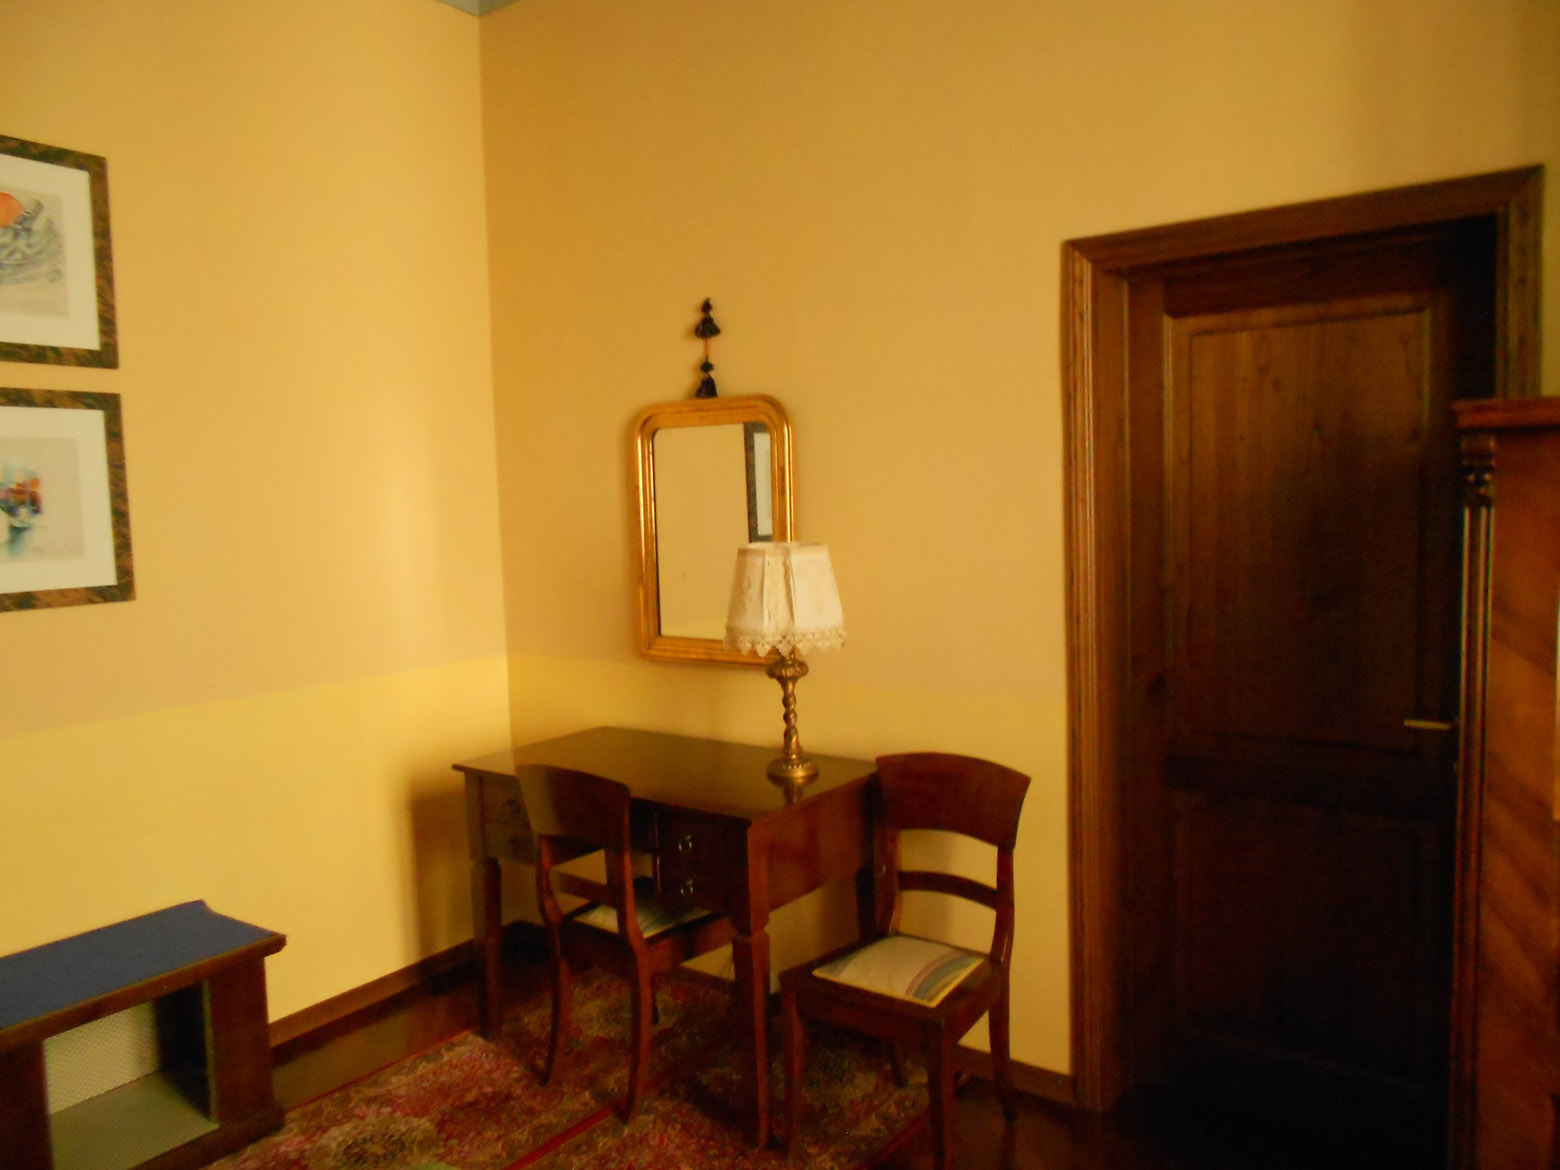 Desk-in-the-yellow-room_1